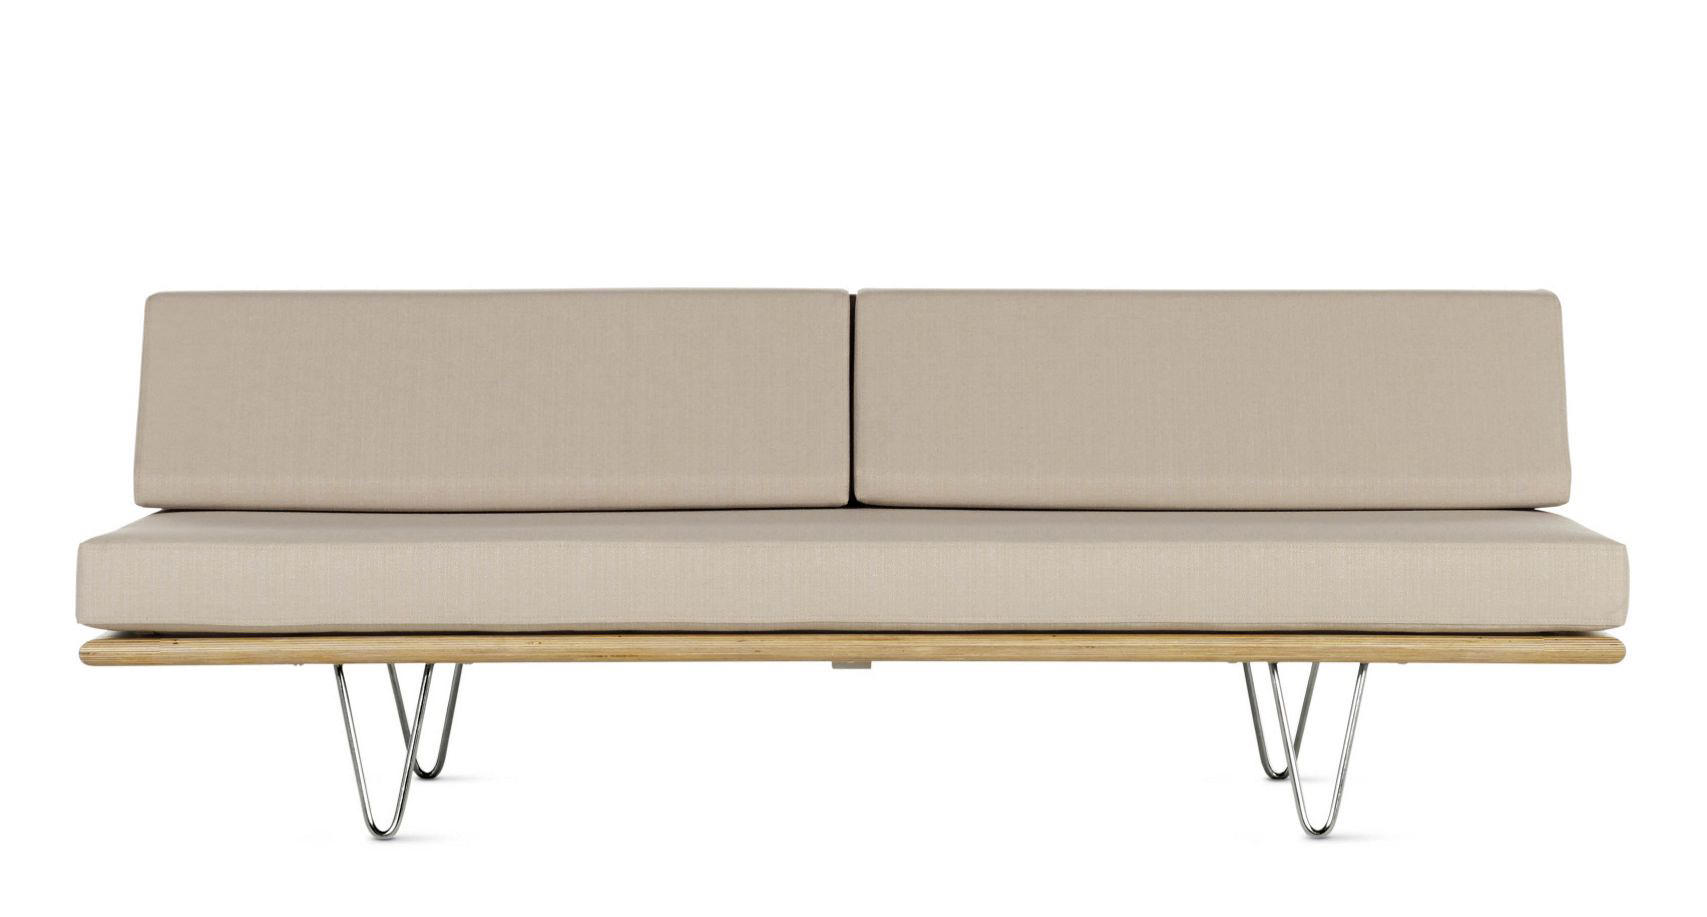 dwr bay sleeper sofa review bed with storage underneath dc hillier 39s mcm daily sofas